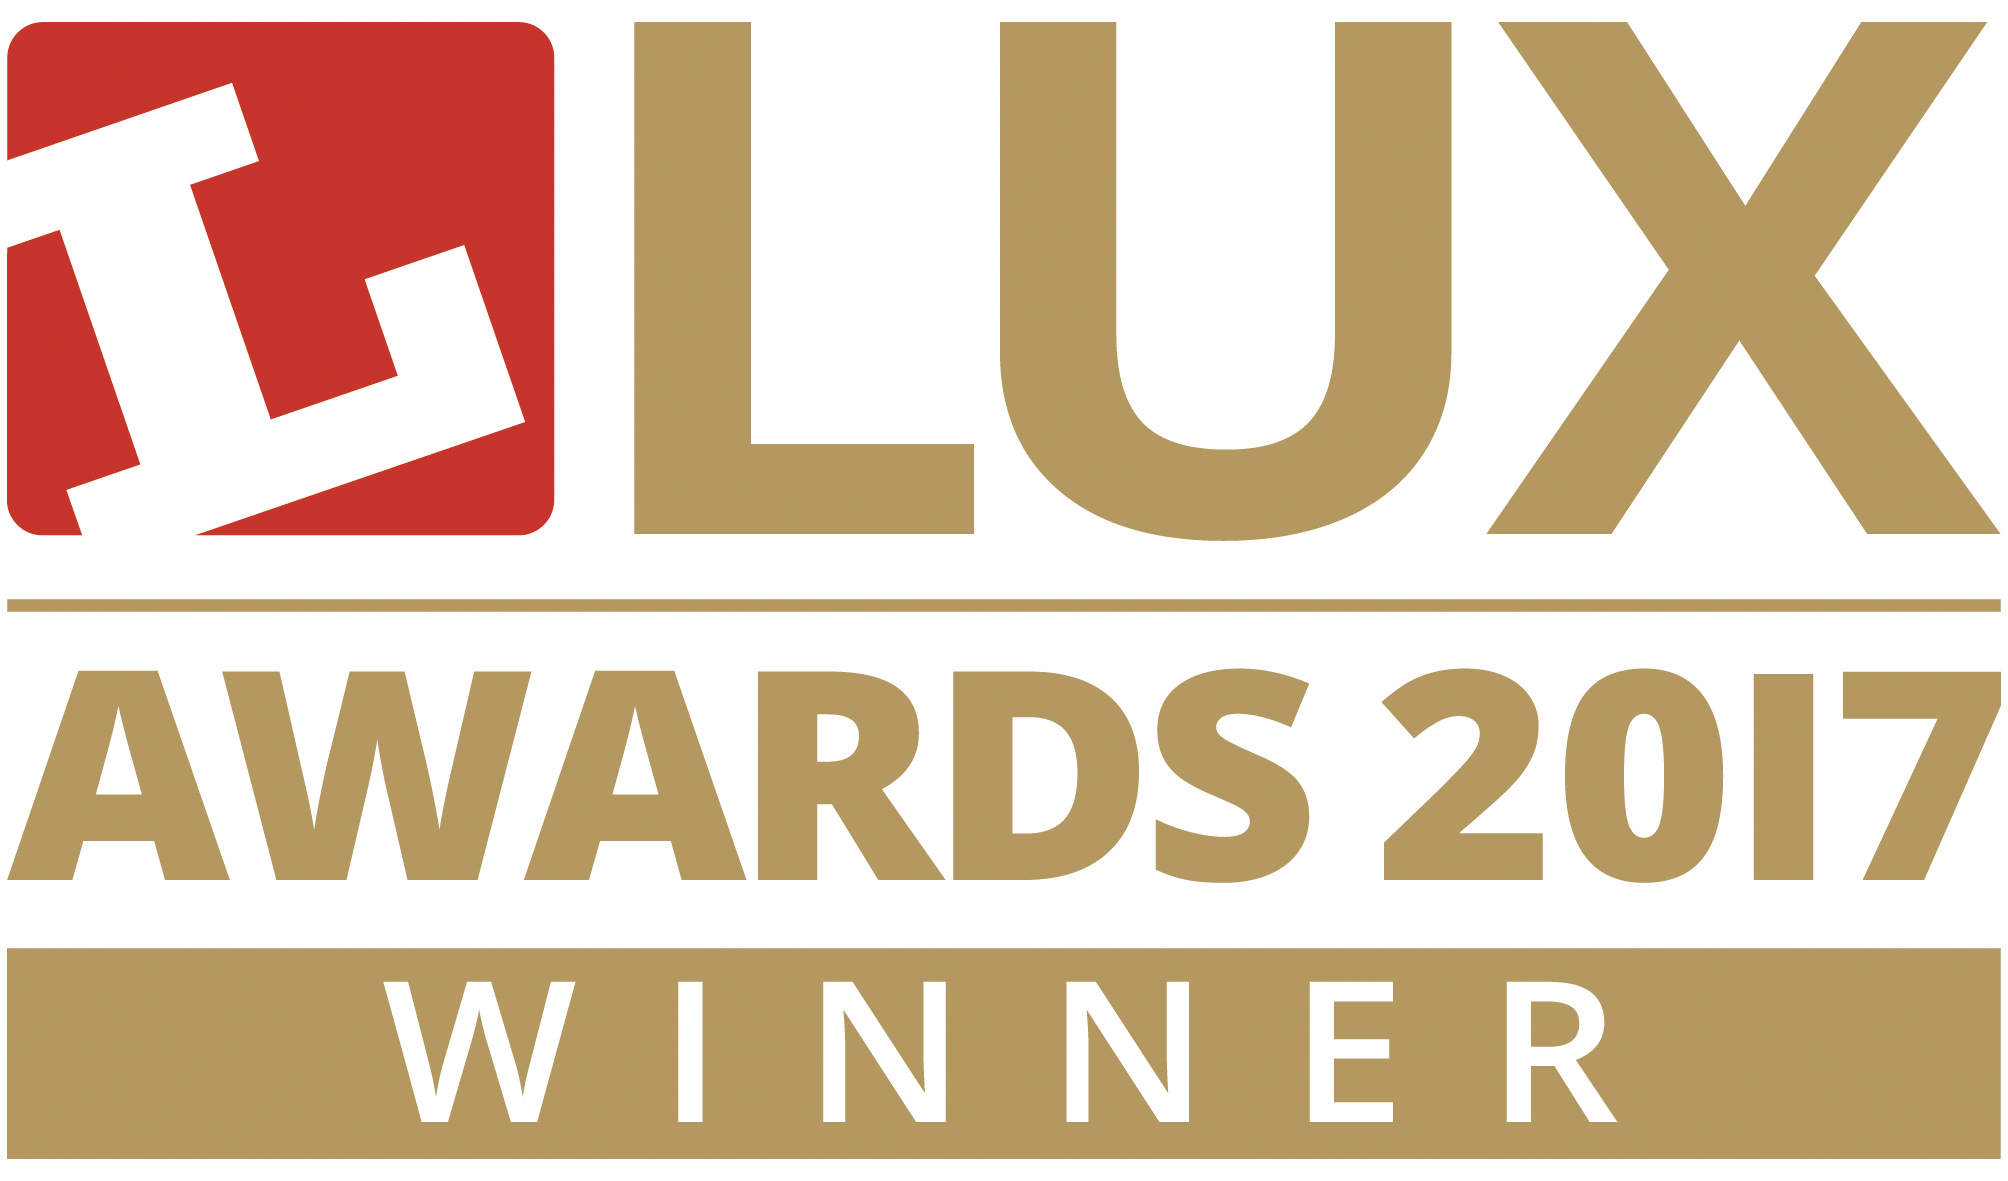 PJC-Light-Studio-Lux-Awards-2017-winner.jpg